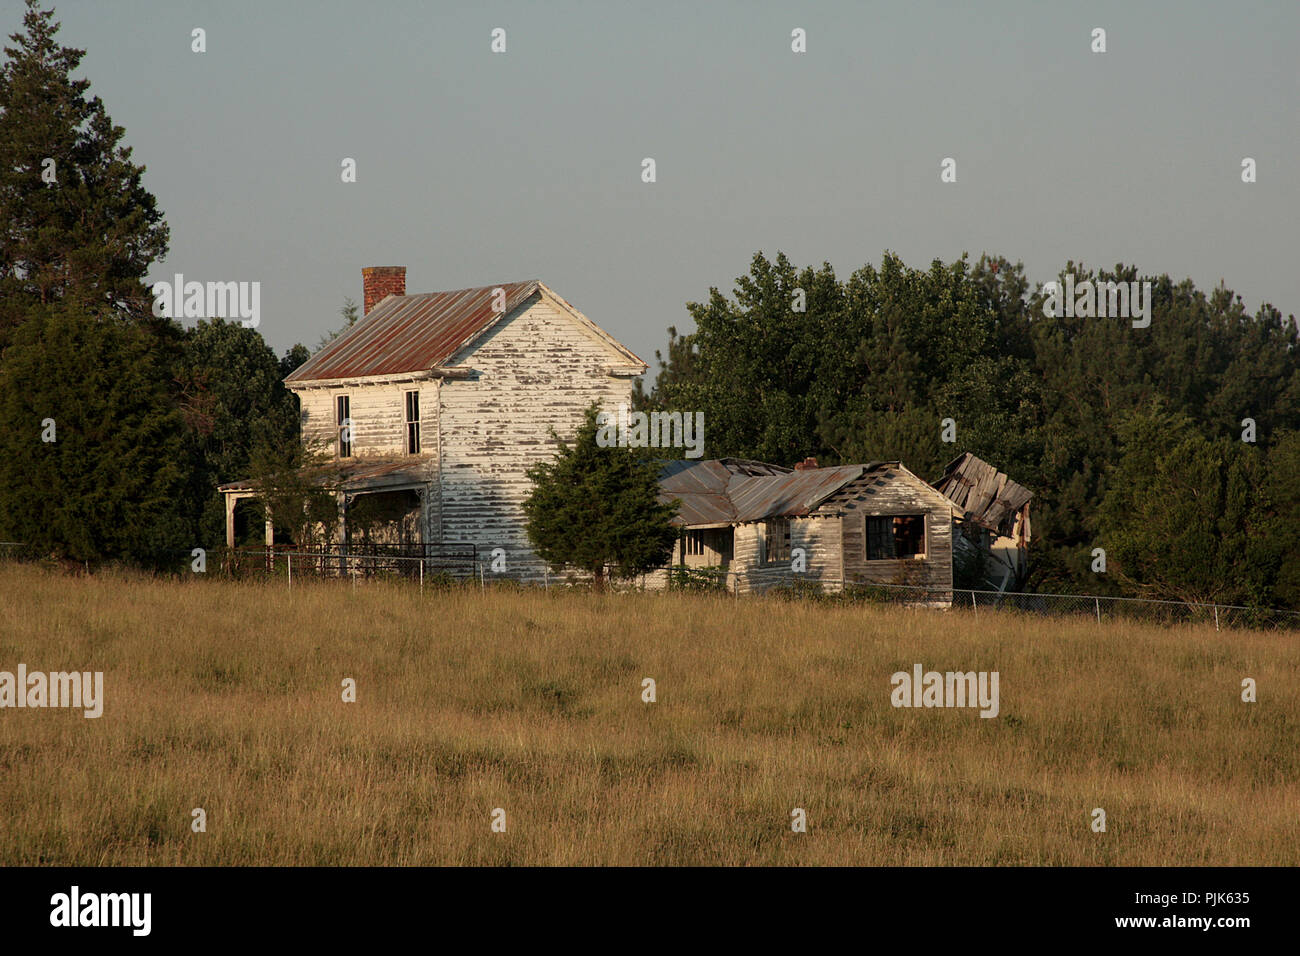 Old abandoned house and shed in rural Virginia - Stock Image